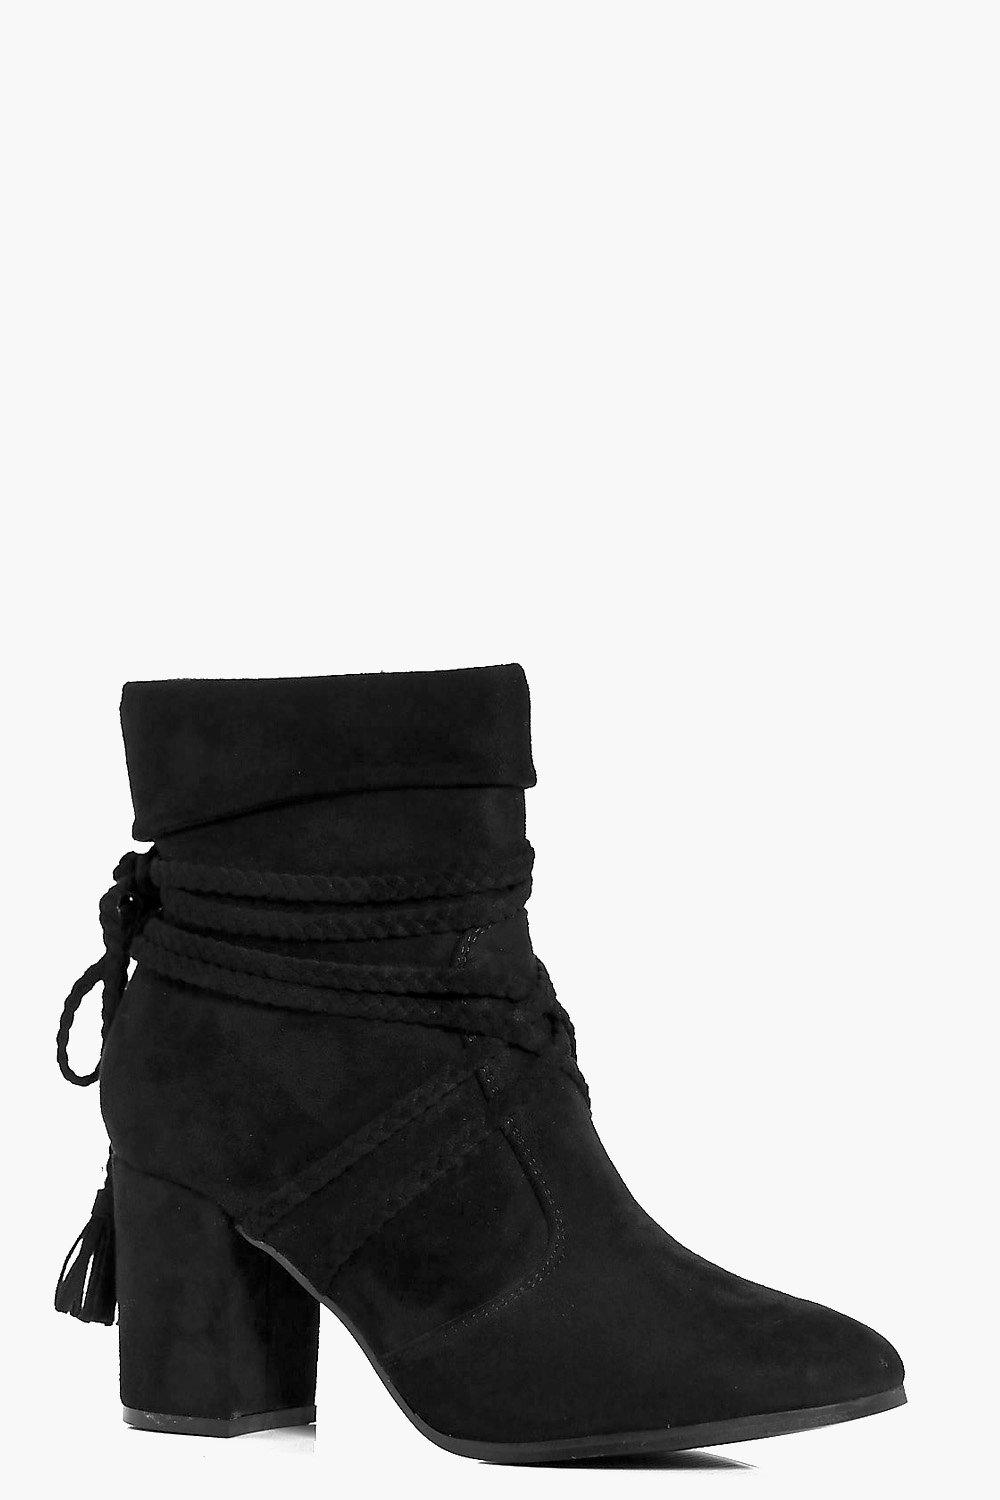 Emilia Plaited Wrap Strap Block Heel Boot